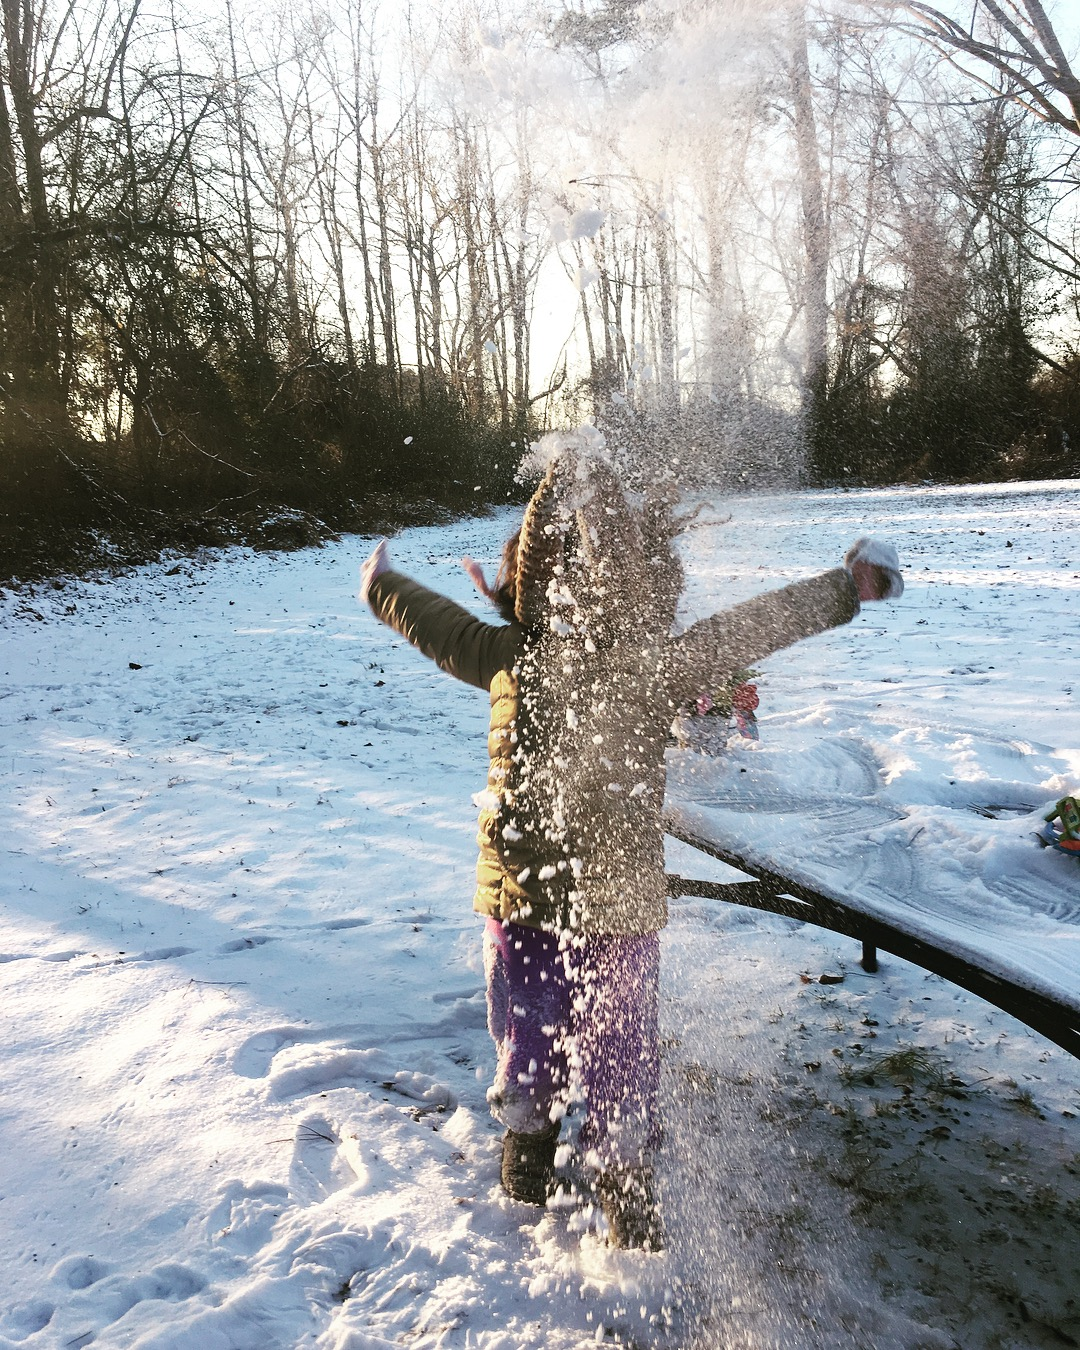 <div class='meta'><div class='origin-logo' data-origin='none'></div><span class='caption-text' data-credit='Fantasia Evans - ABC11 Eyewitness'>Mila playing in the snow!</span></div>